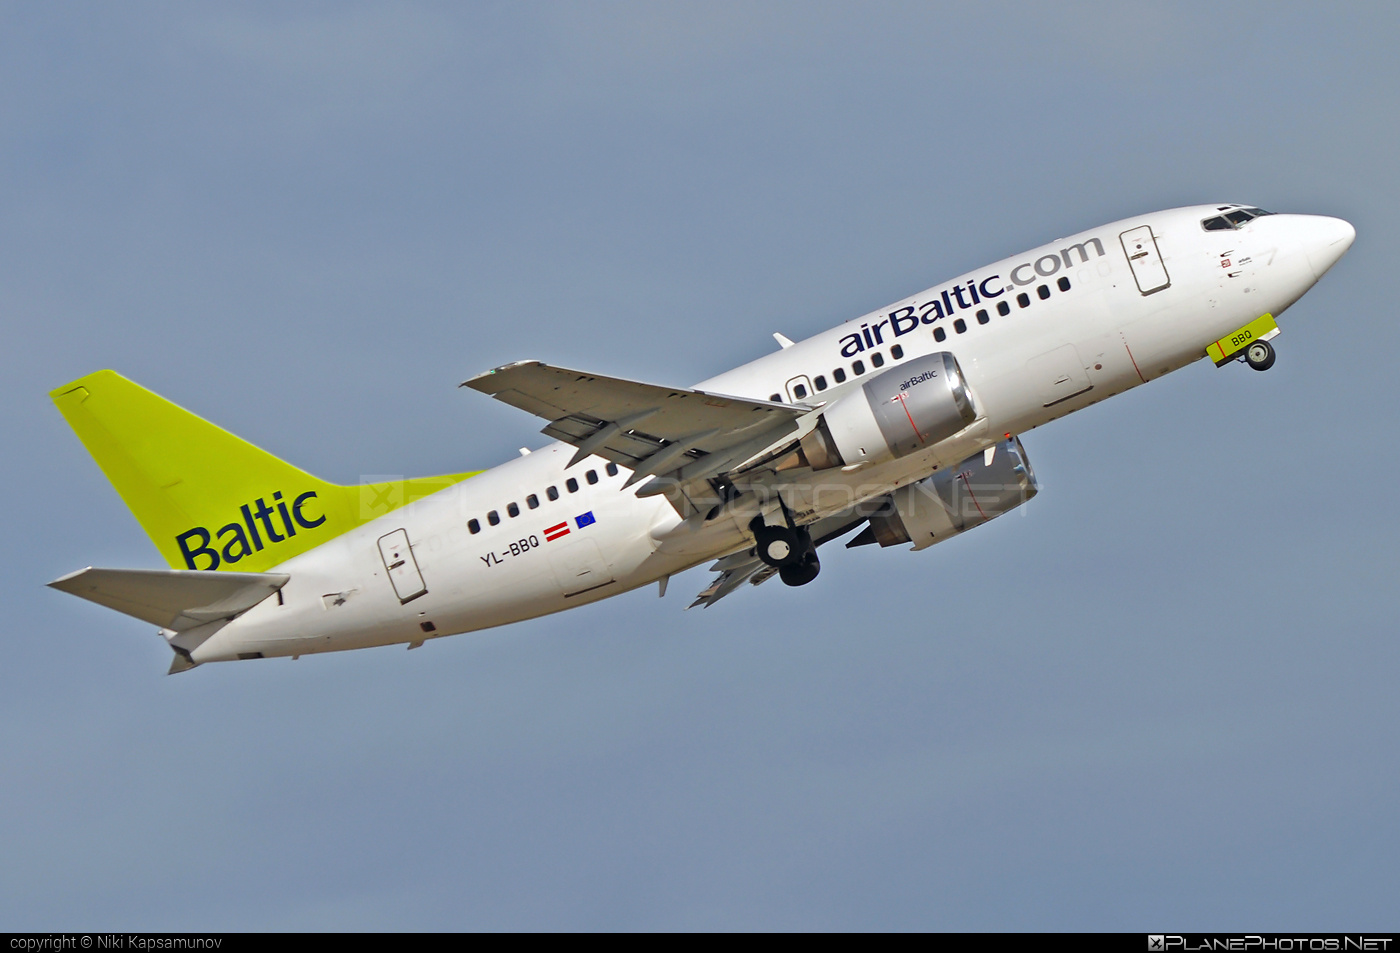 Air Baltic Boeing 737-500 - YL-BBQ #airbaltic #b737 #boeing #boeing737